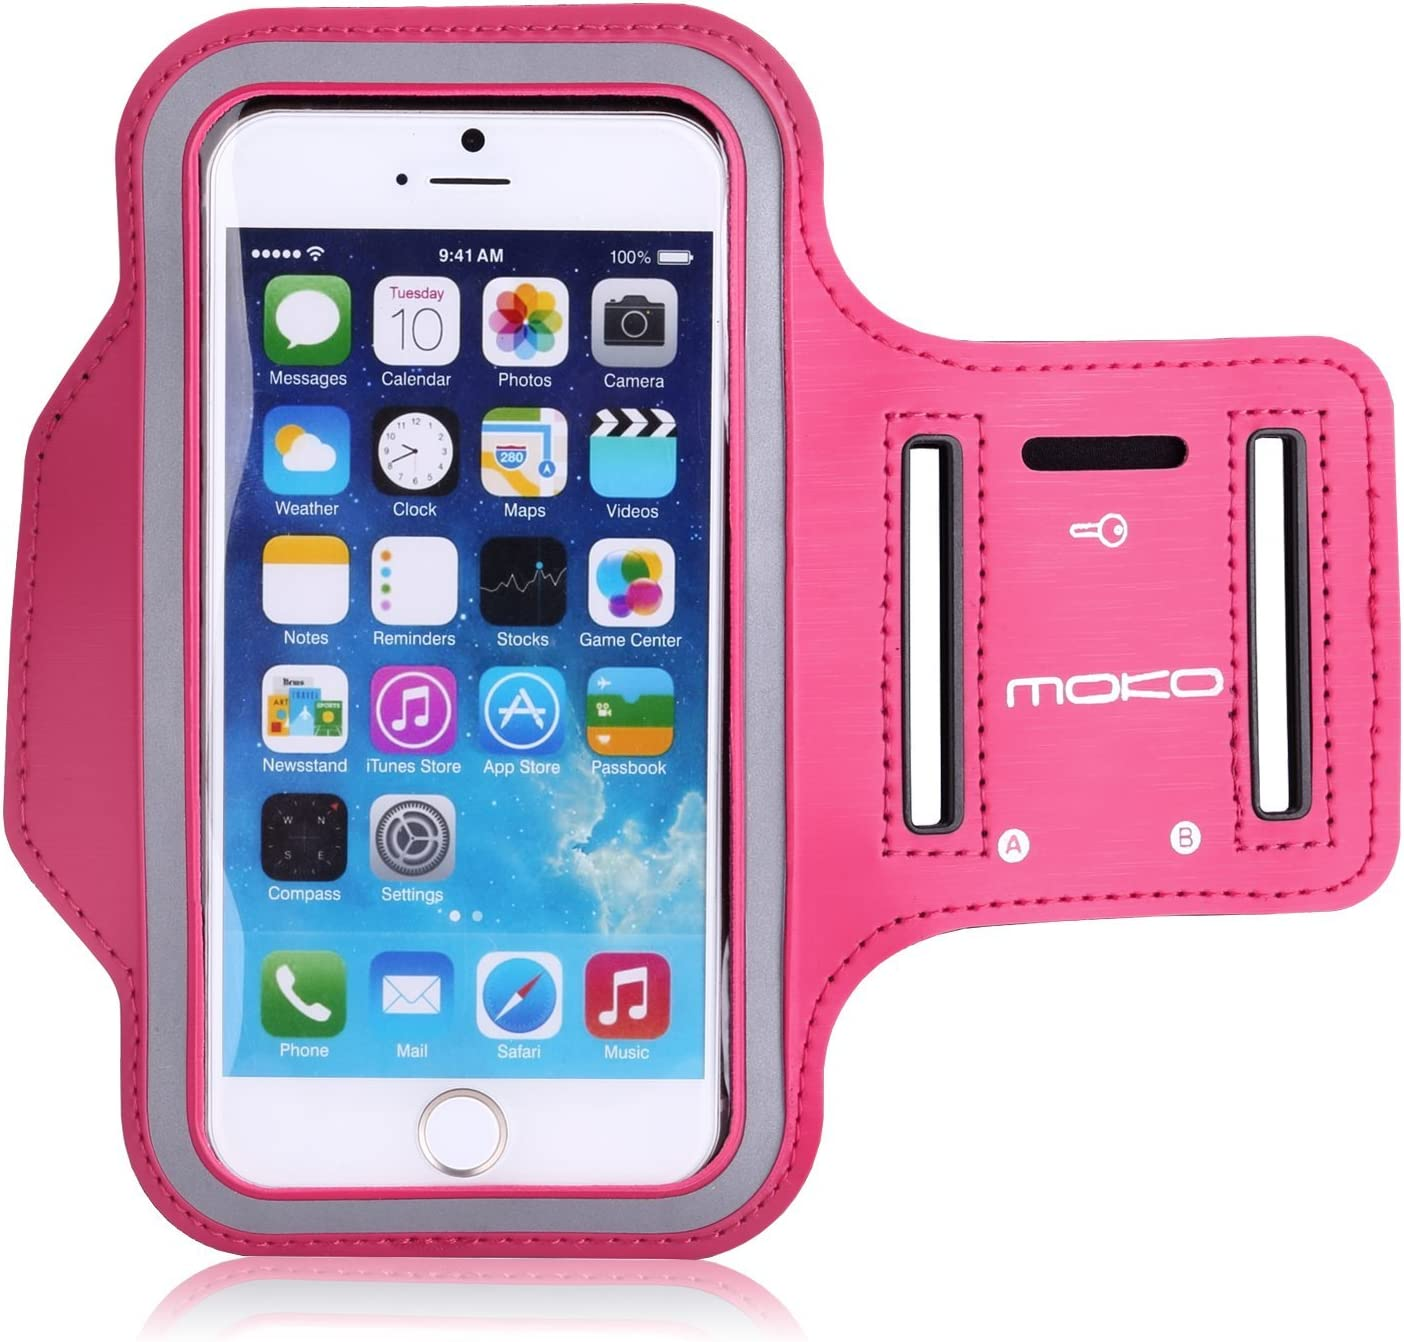 MoKo Armband Compatible with iPhone 6s / 6, Sweatproof Sports Running Armband Workout Arm Band Cover Fit iPhone 6S, 6, 5S, 5, Galaxy S7, S6 Edge, Magenta (Fits Arm Girth 9